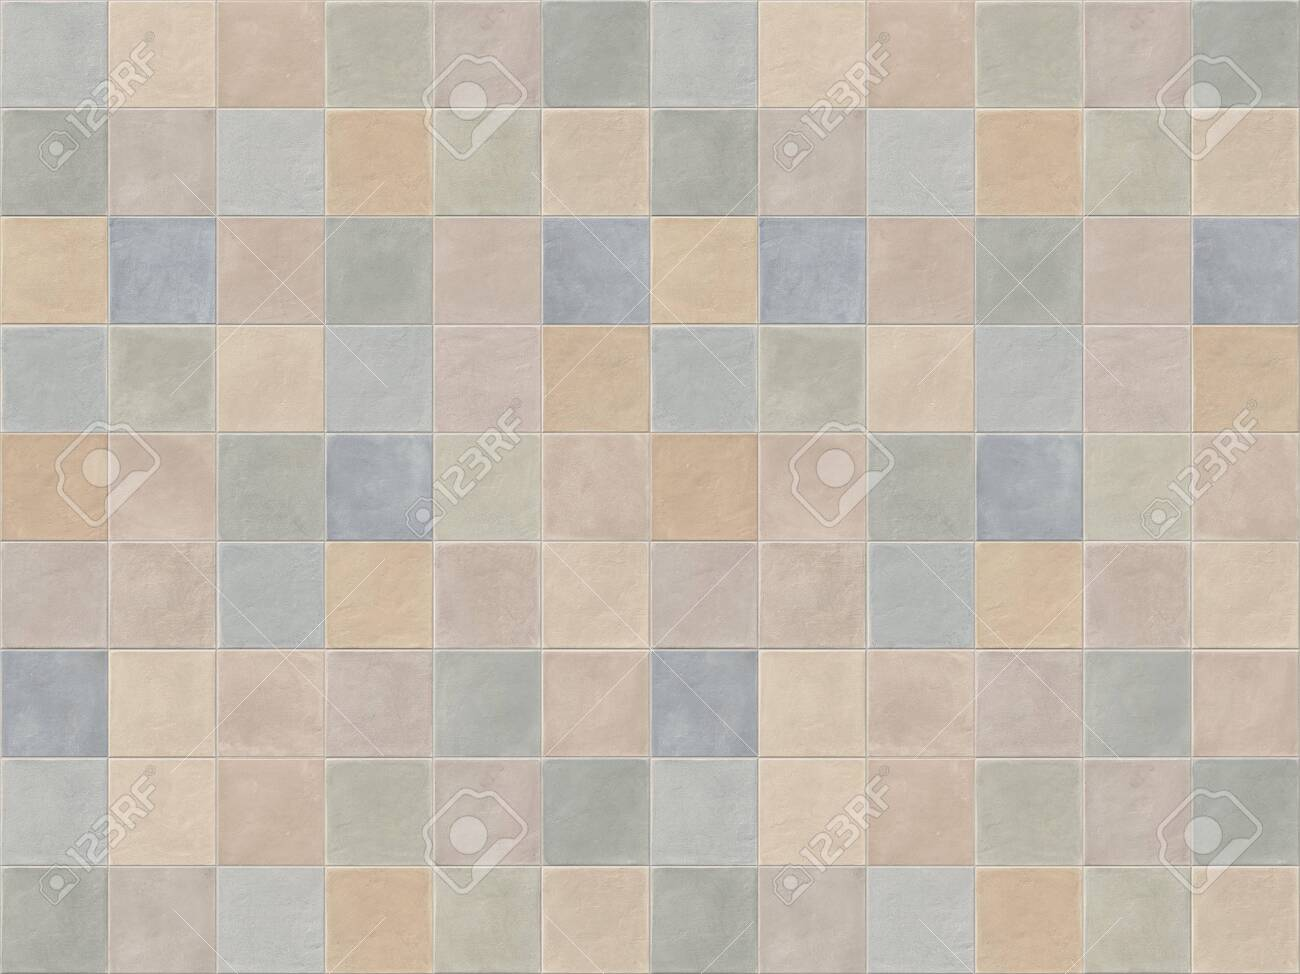 Pastel Beige Blue Pink And Green Square Ceramic Mosaic Tiles Stock Photo Picture And Royalty Free Image Image 119566510